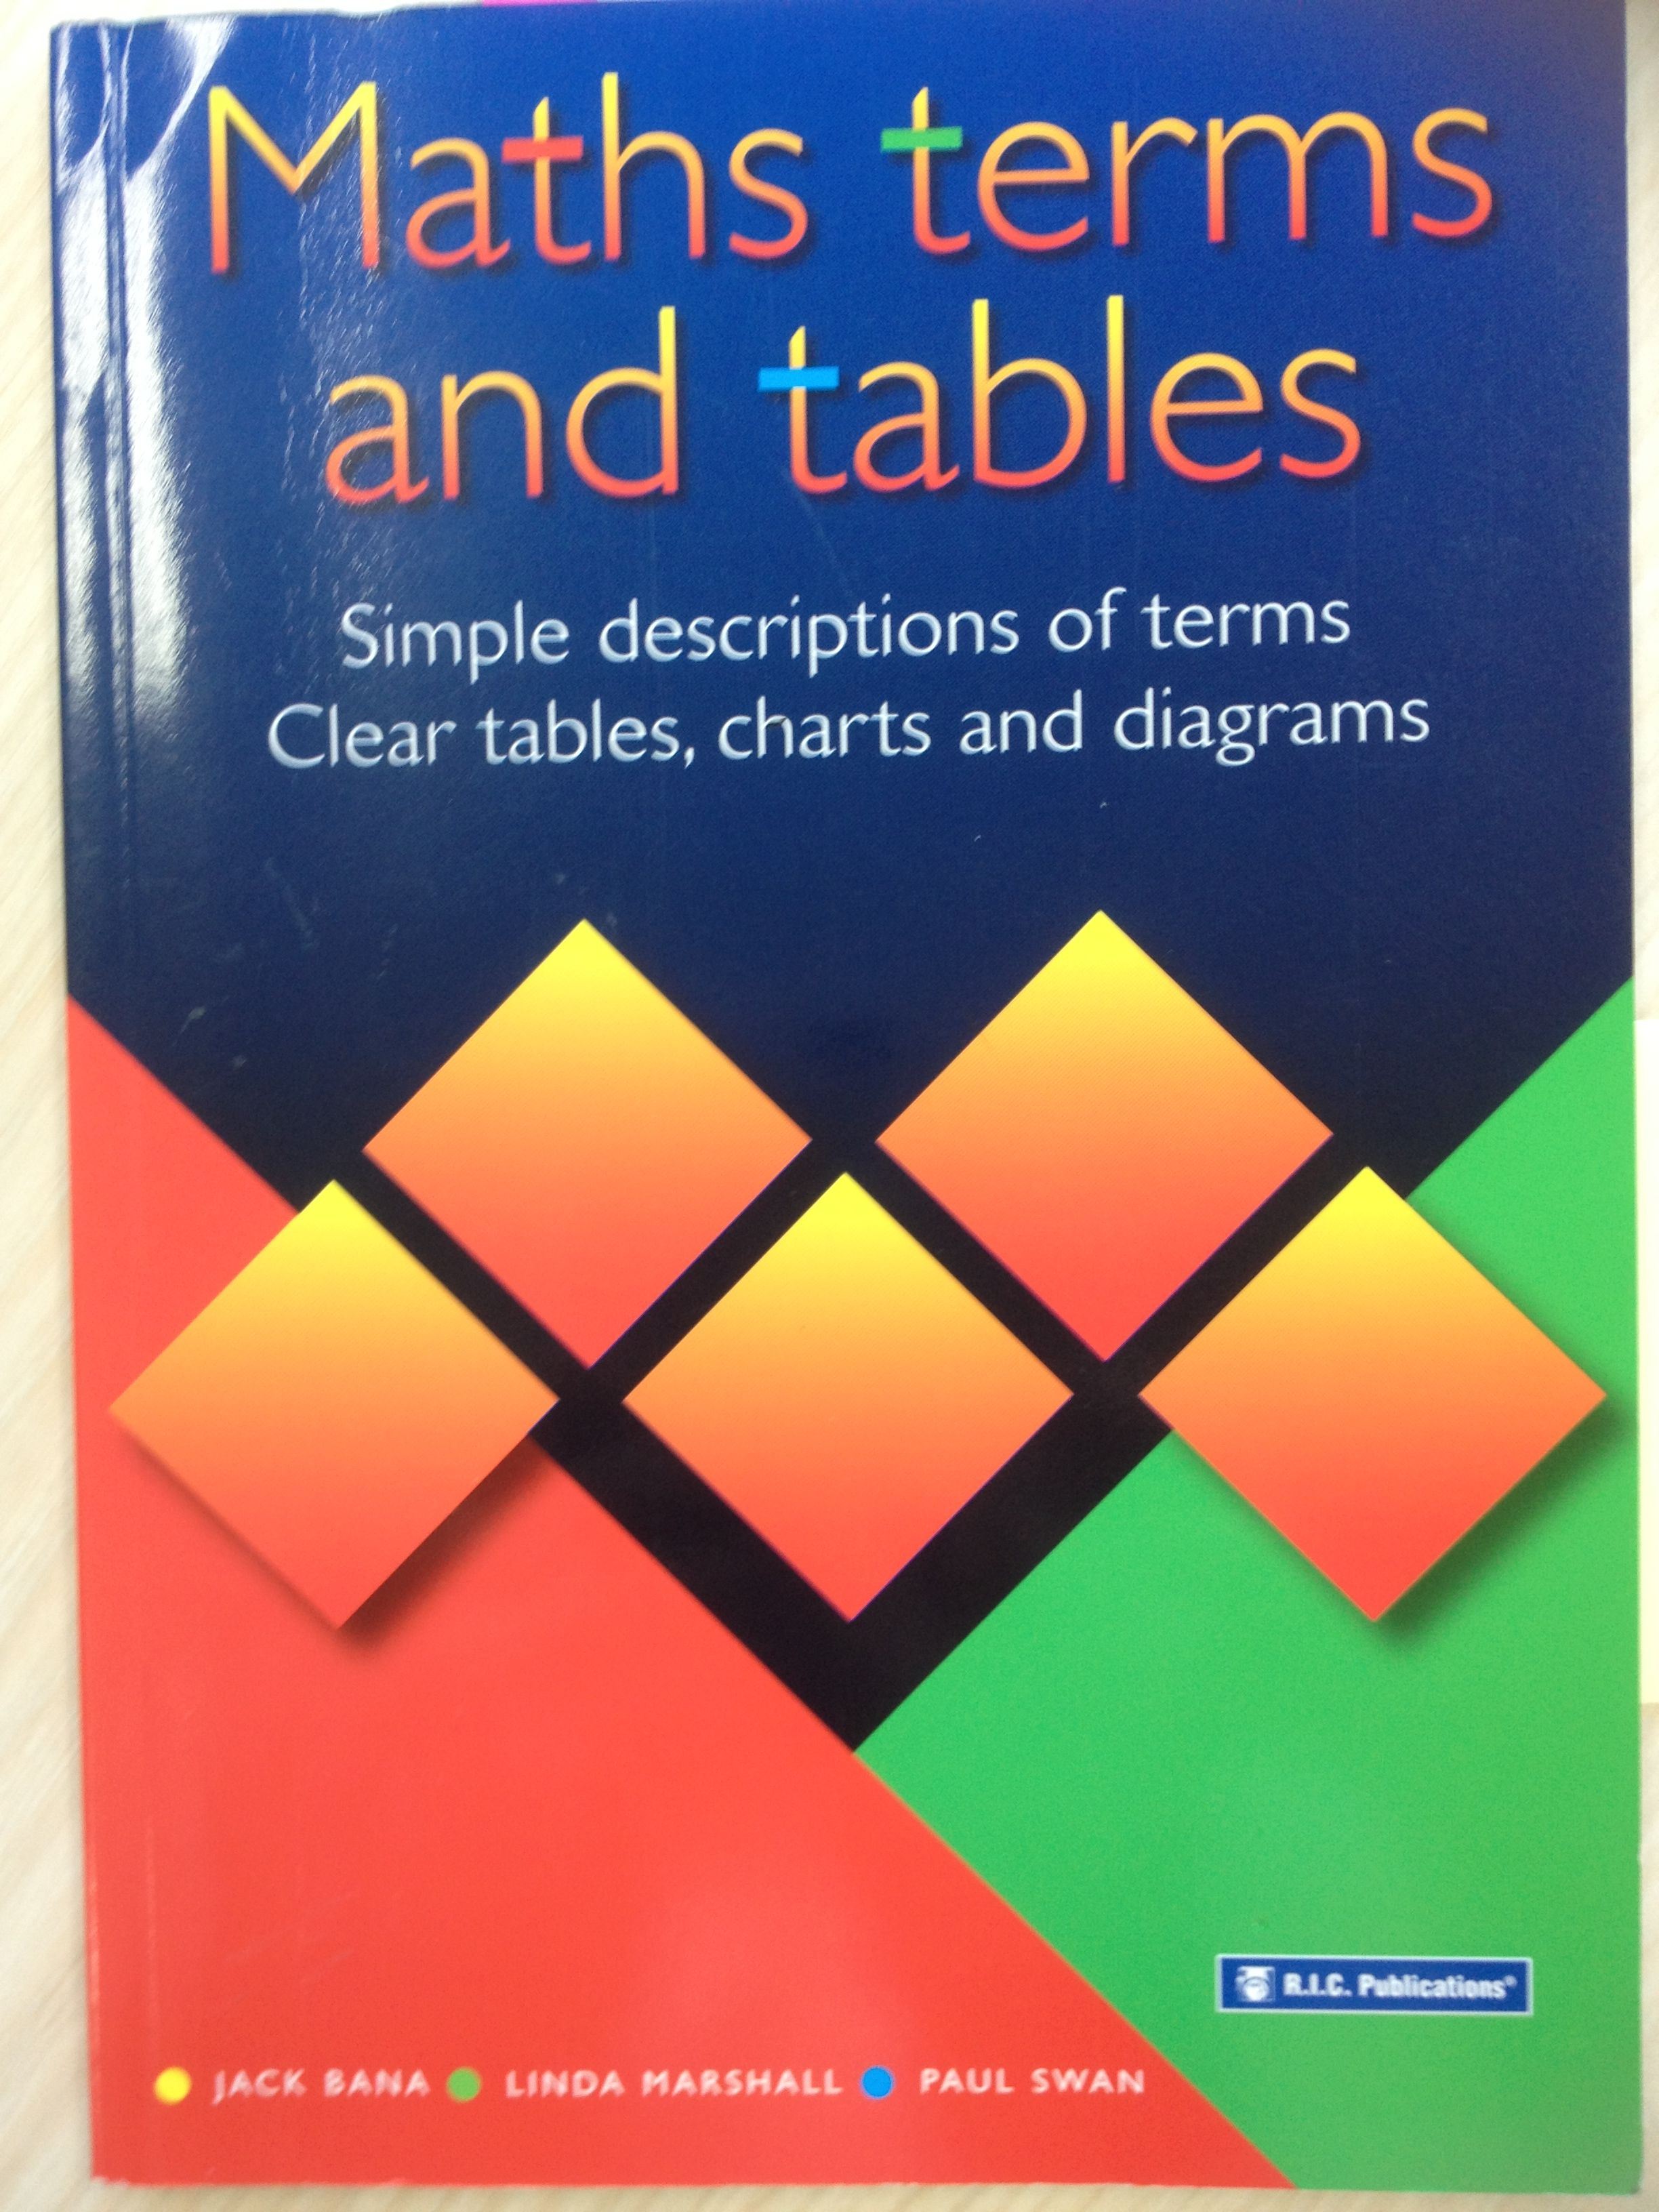 Must Have Maths Dictionary For Teachers And Students